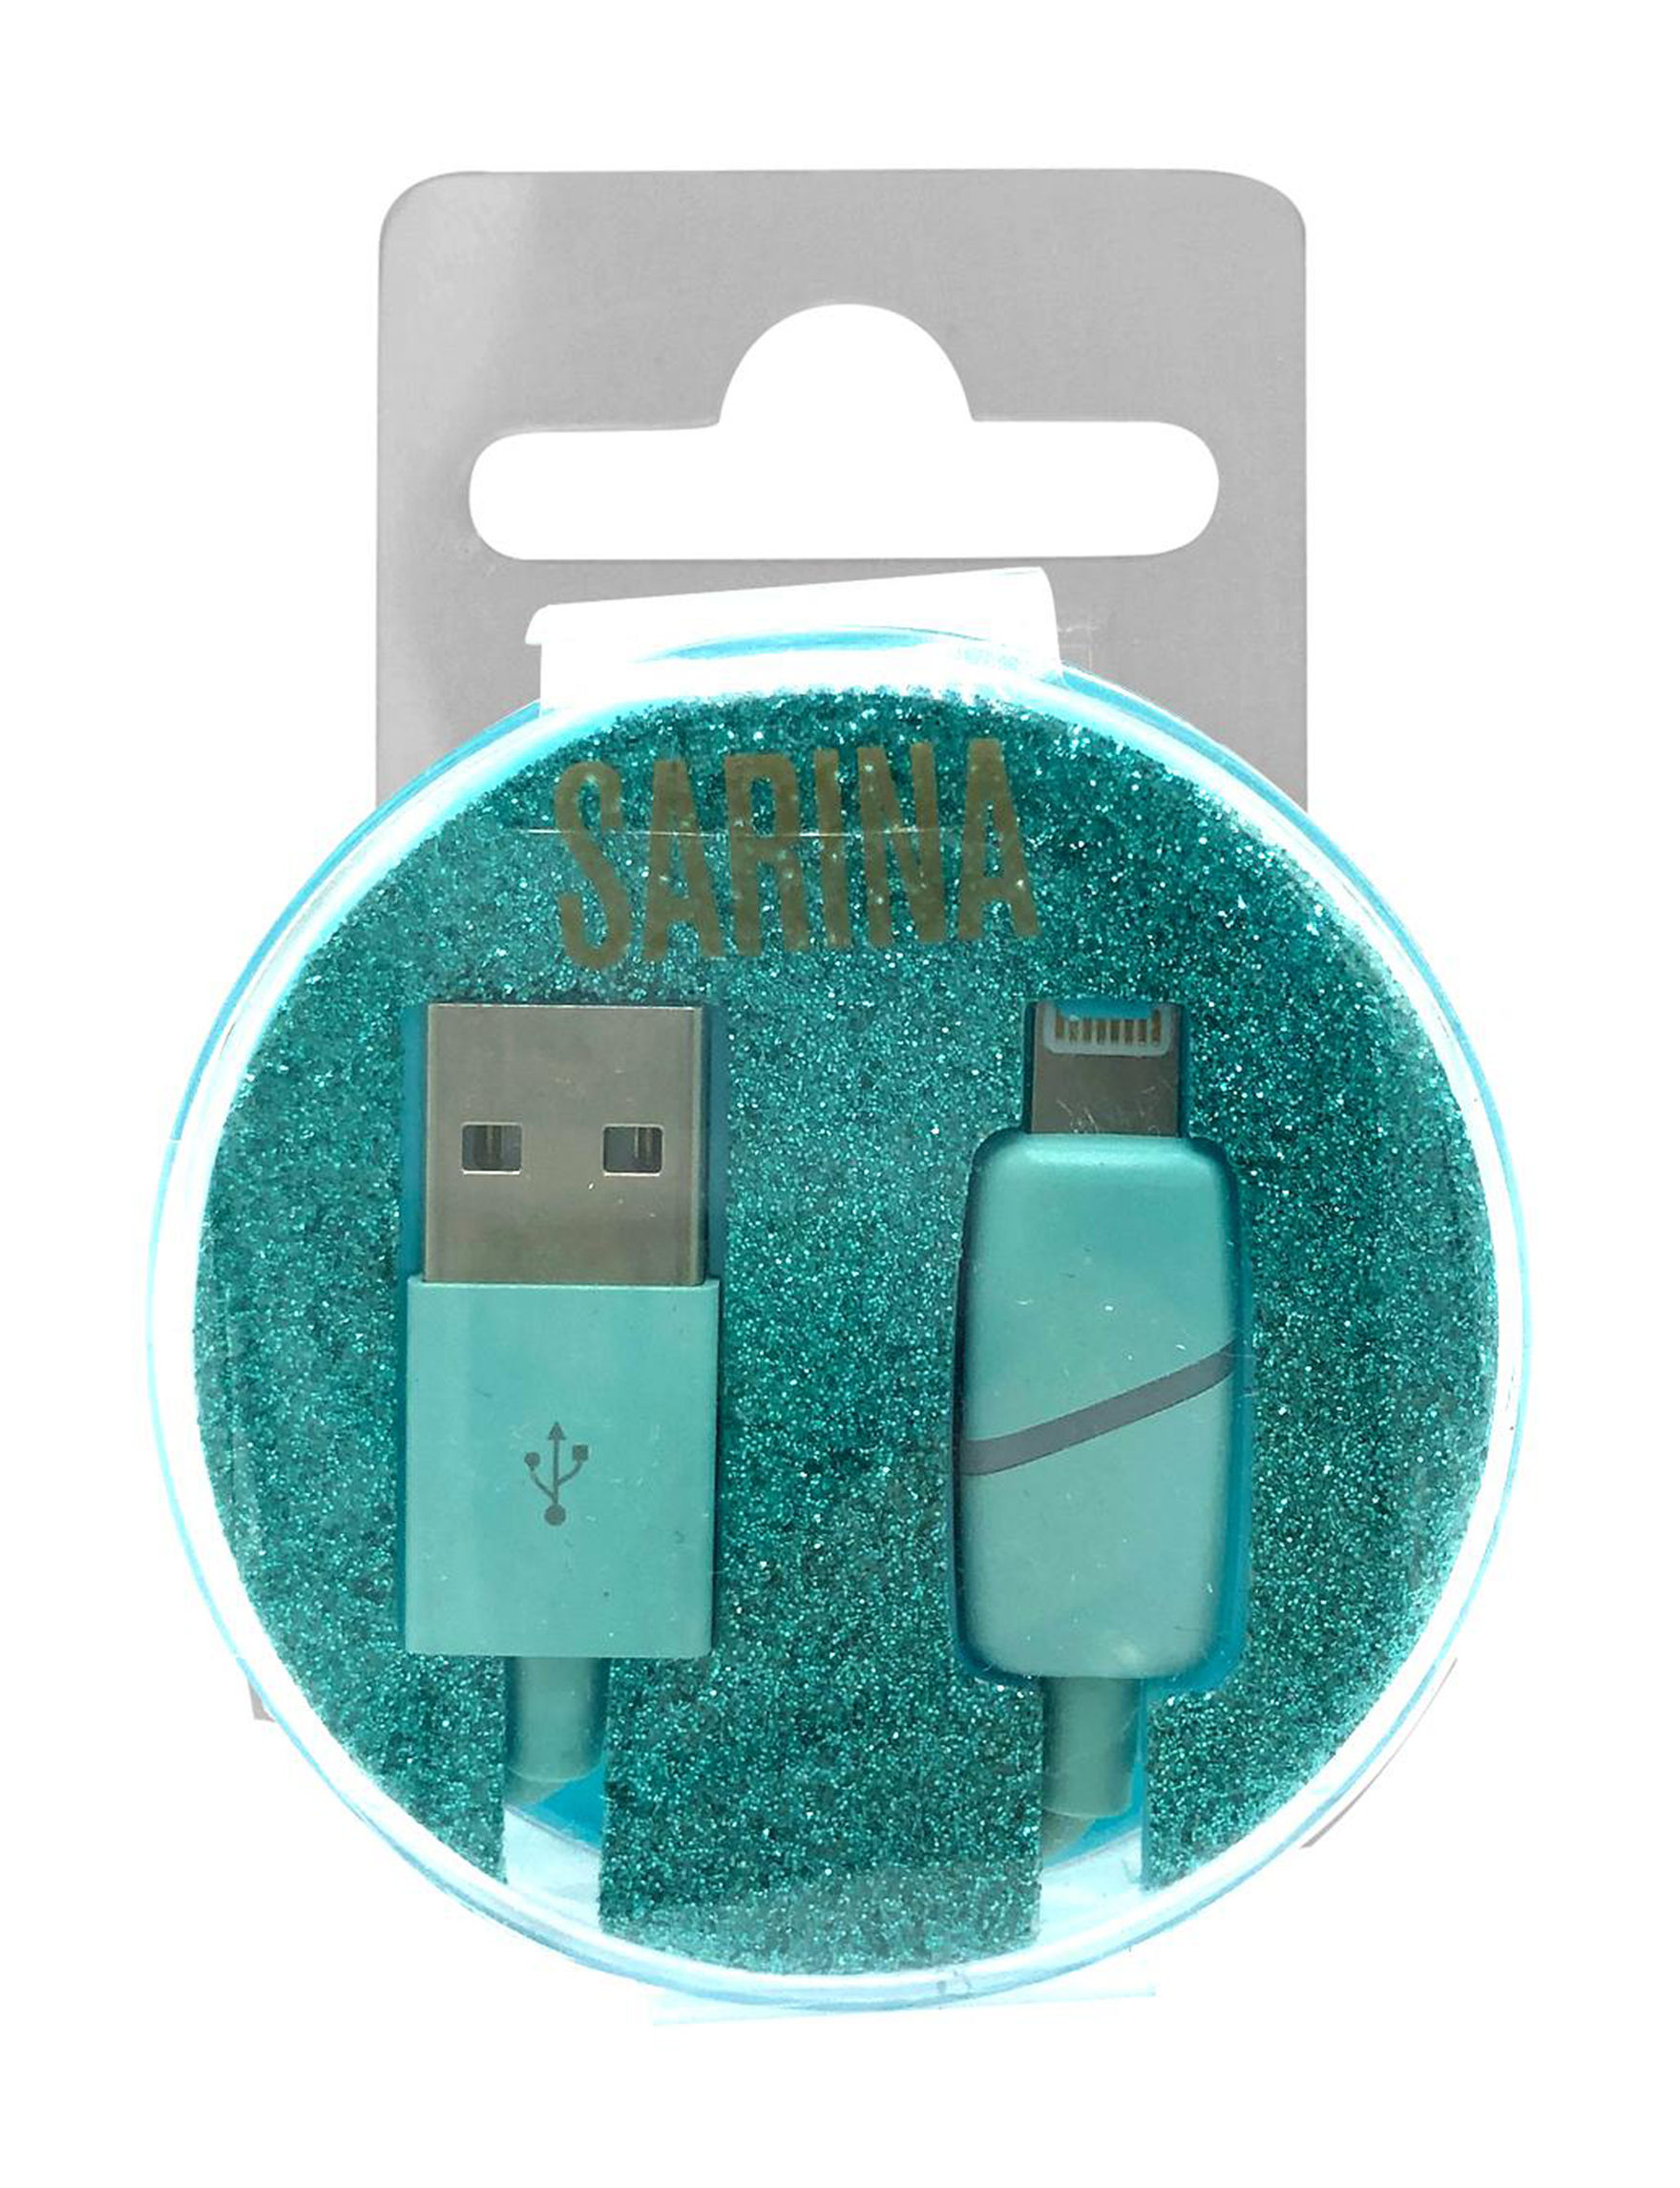 Sarina Blue Glitter Cables & Outlets Tech Accessories